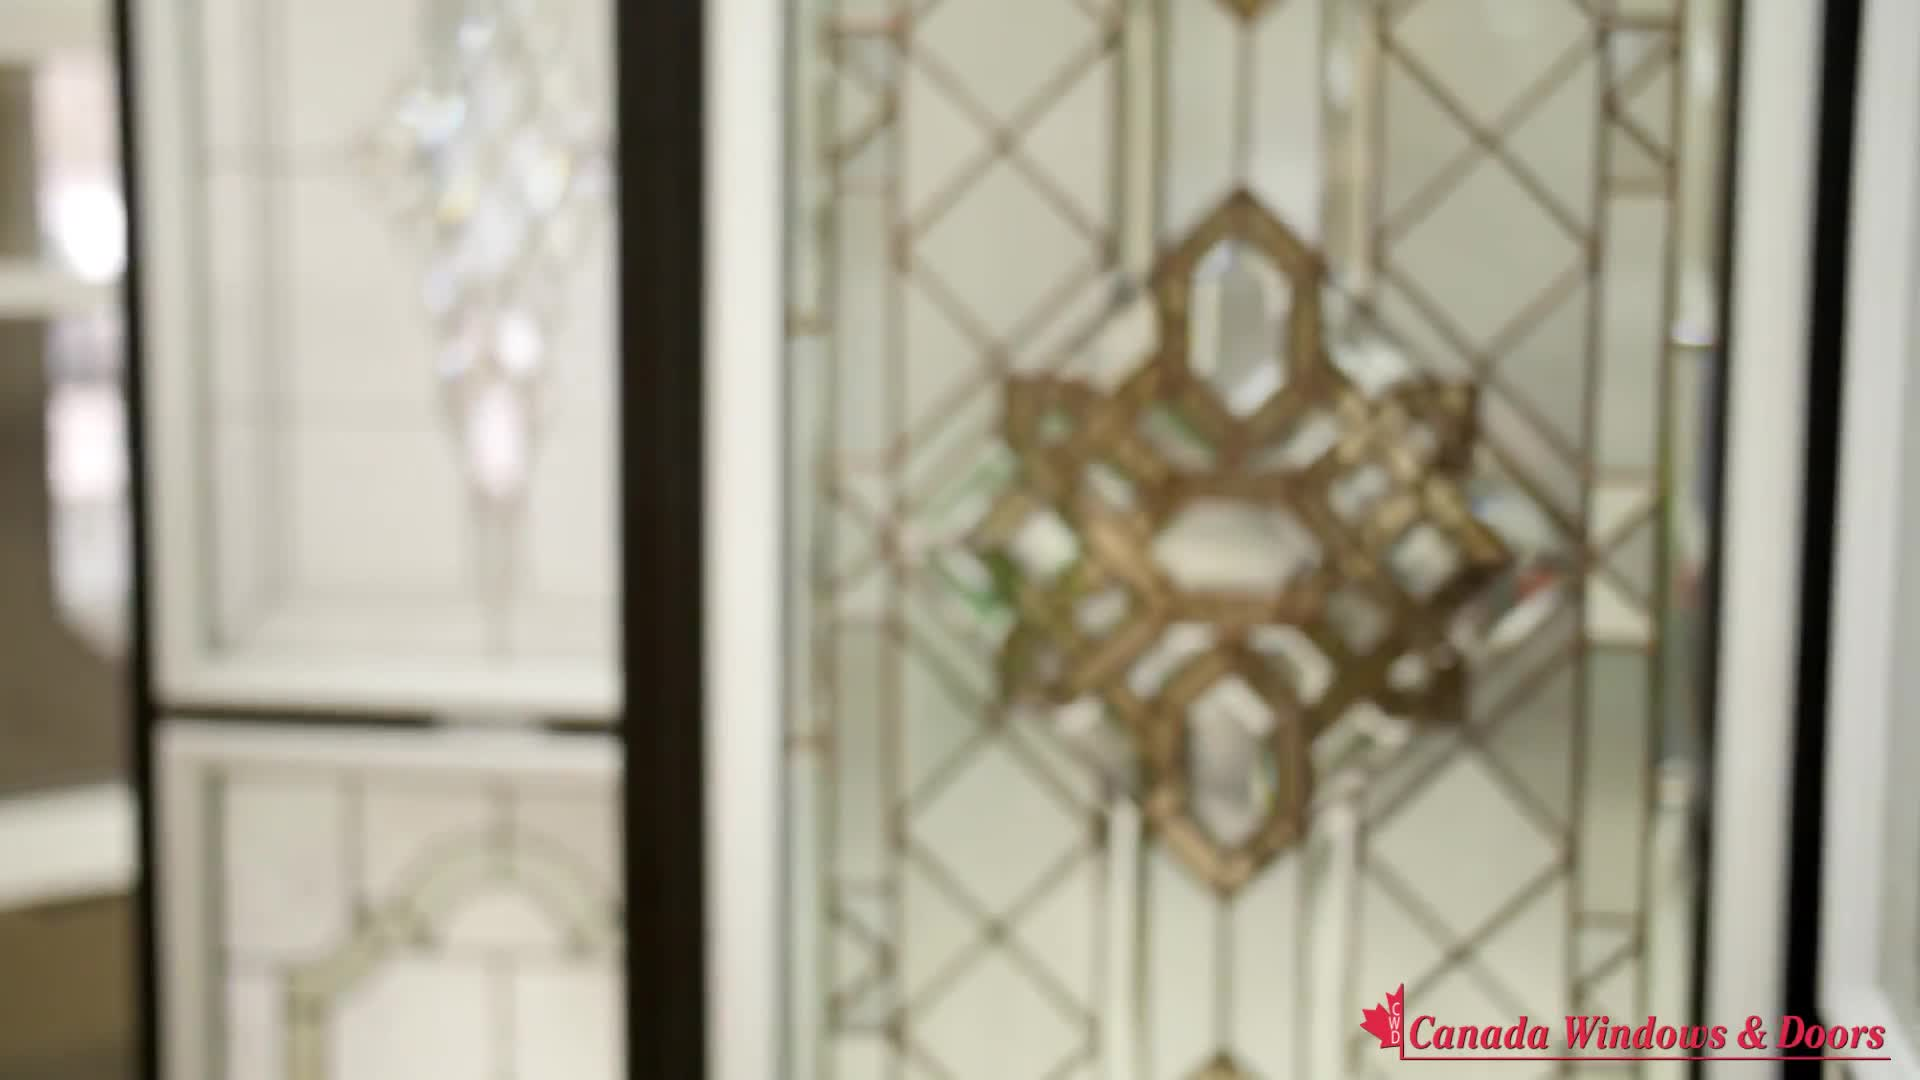 video Canada Windows \u0026 Doors & Canada Windows \u0026 Doors - Whitby ON - 119 Consumers Dr | Canpages